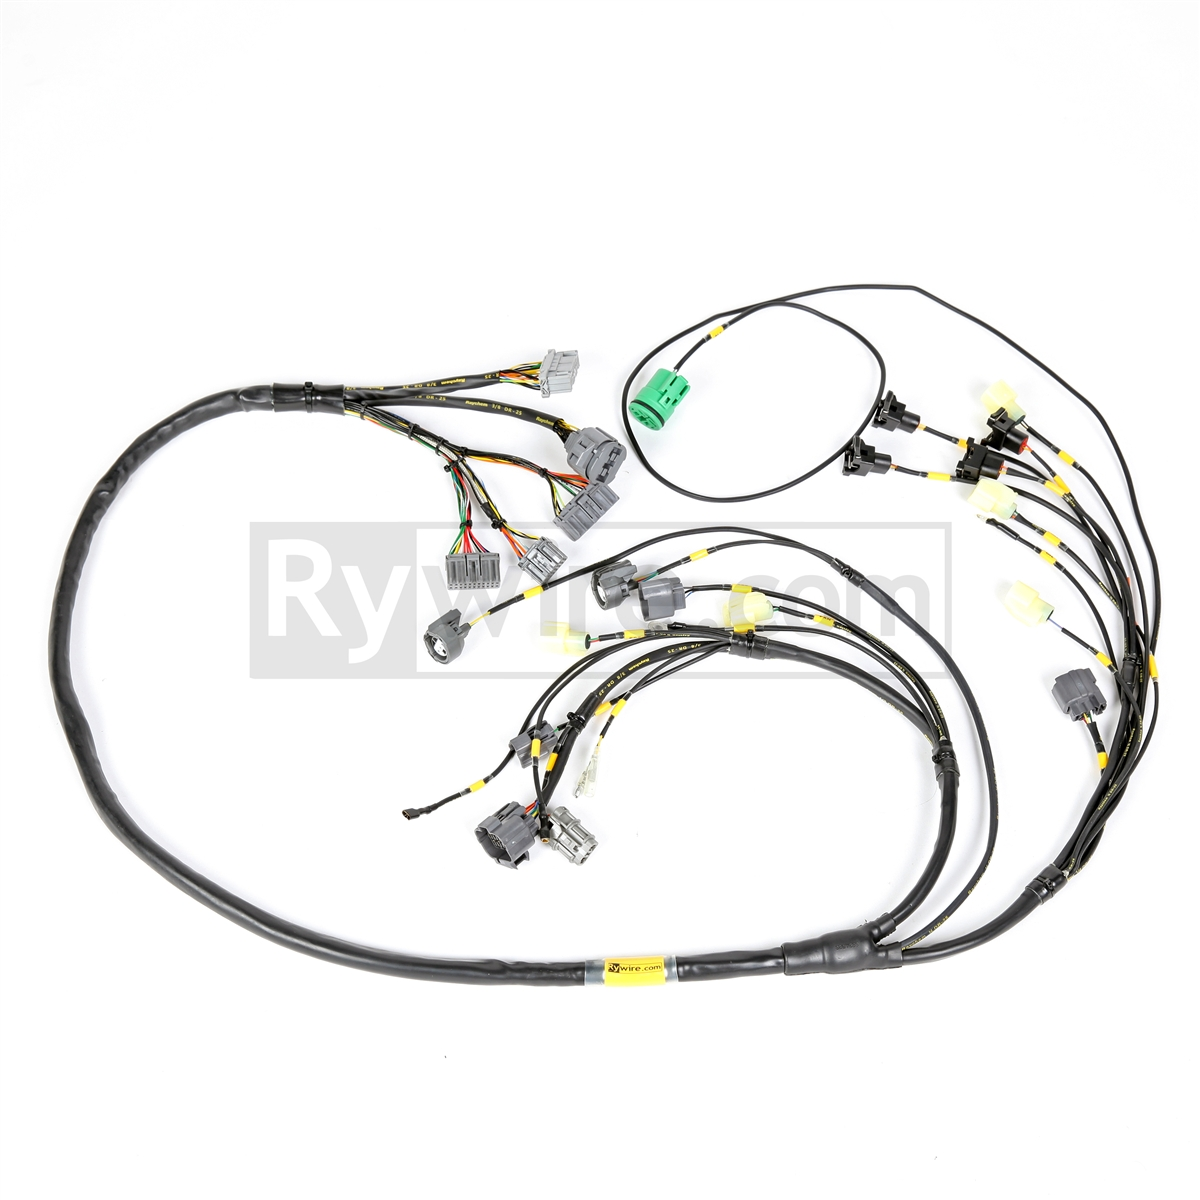 hight resolution of ek wiring harness wiring diagrams b16 wiring harness diagram 9200 hondaacura wiring sensor